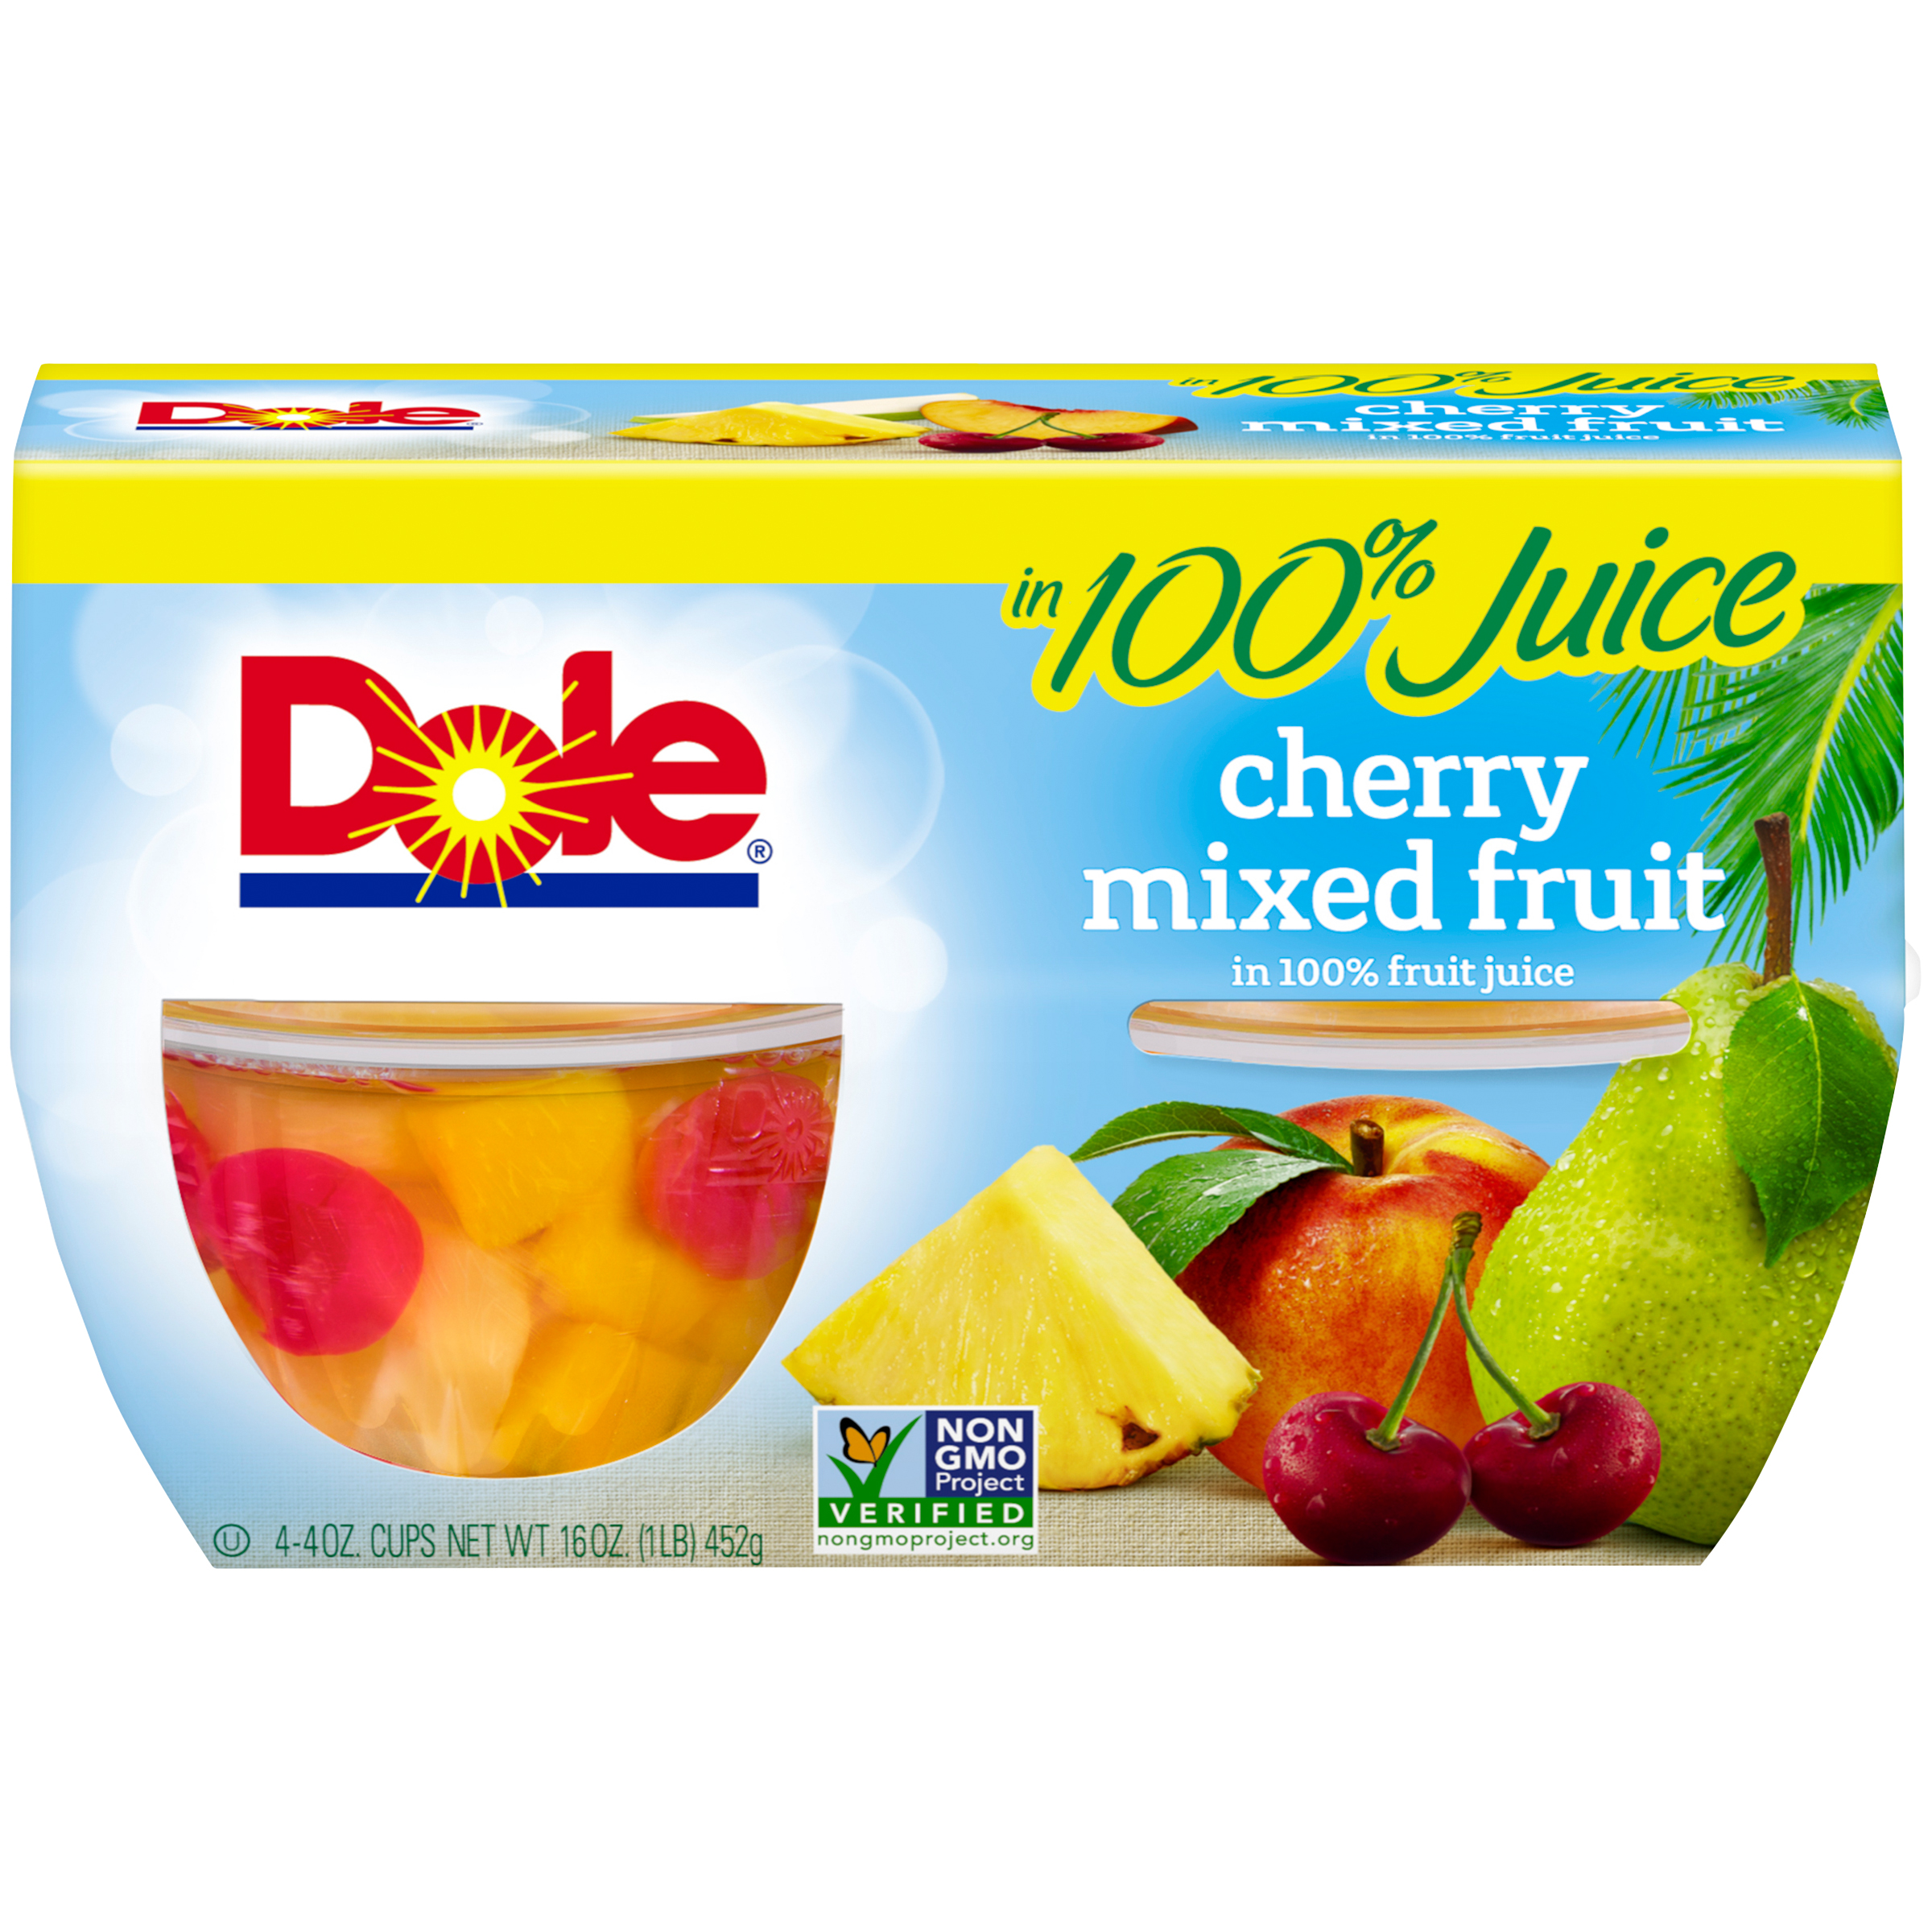 Dole Fruit Bowls, Cherry Mixed Fruit in 100% Fruit Juice, 4 Ounce (4 Cups)